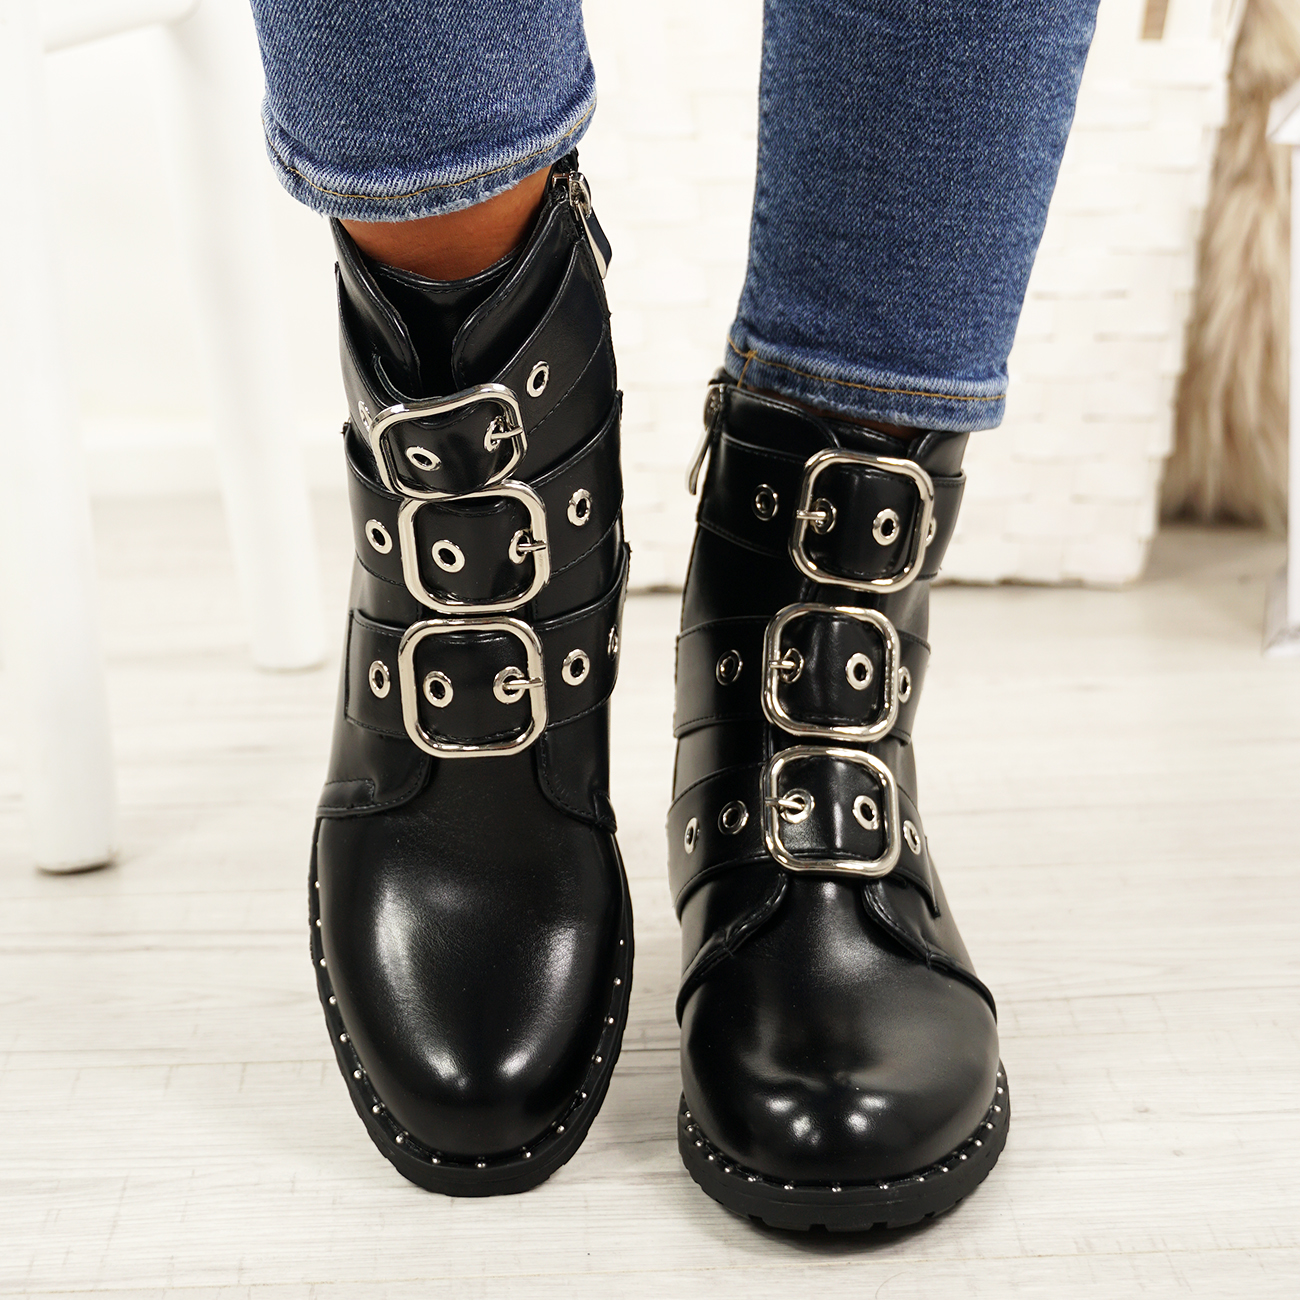 LADIES-WOMENS-BIKER-ANKLE-BOOTS-ZIP-STUDDED-LOW-HEEL-COMFY-SHOES-SIZES thumbnail 8